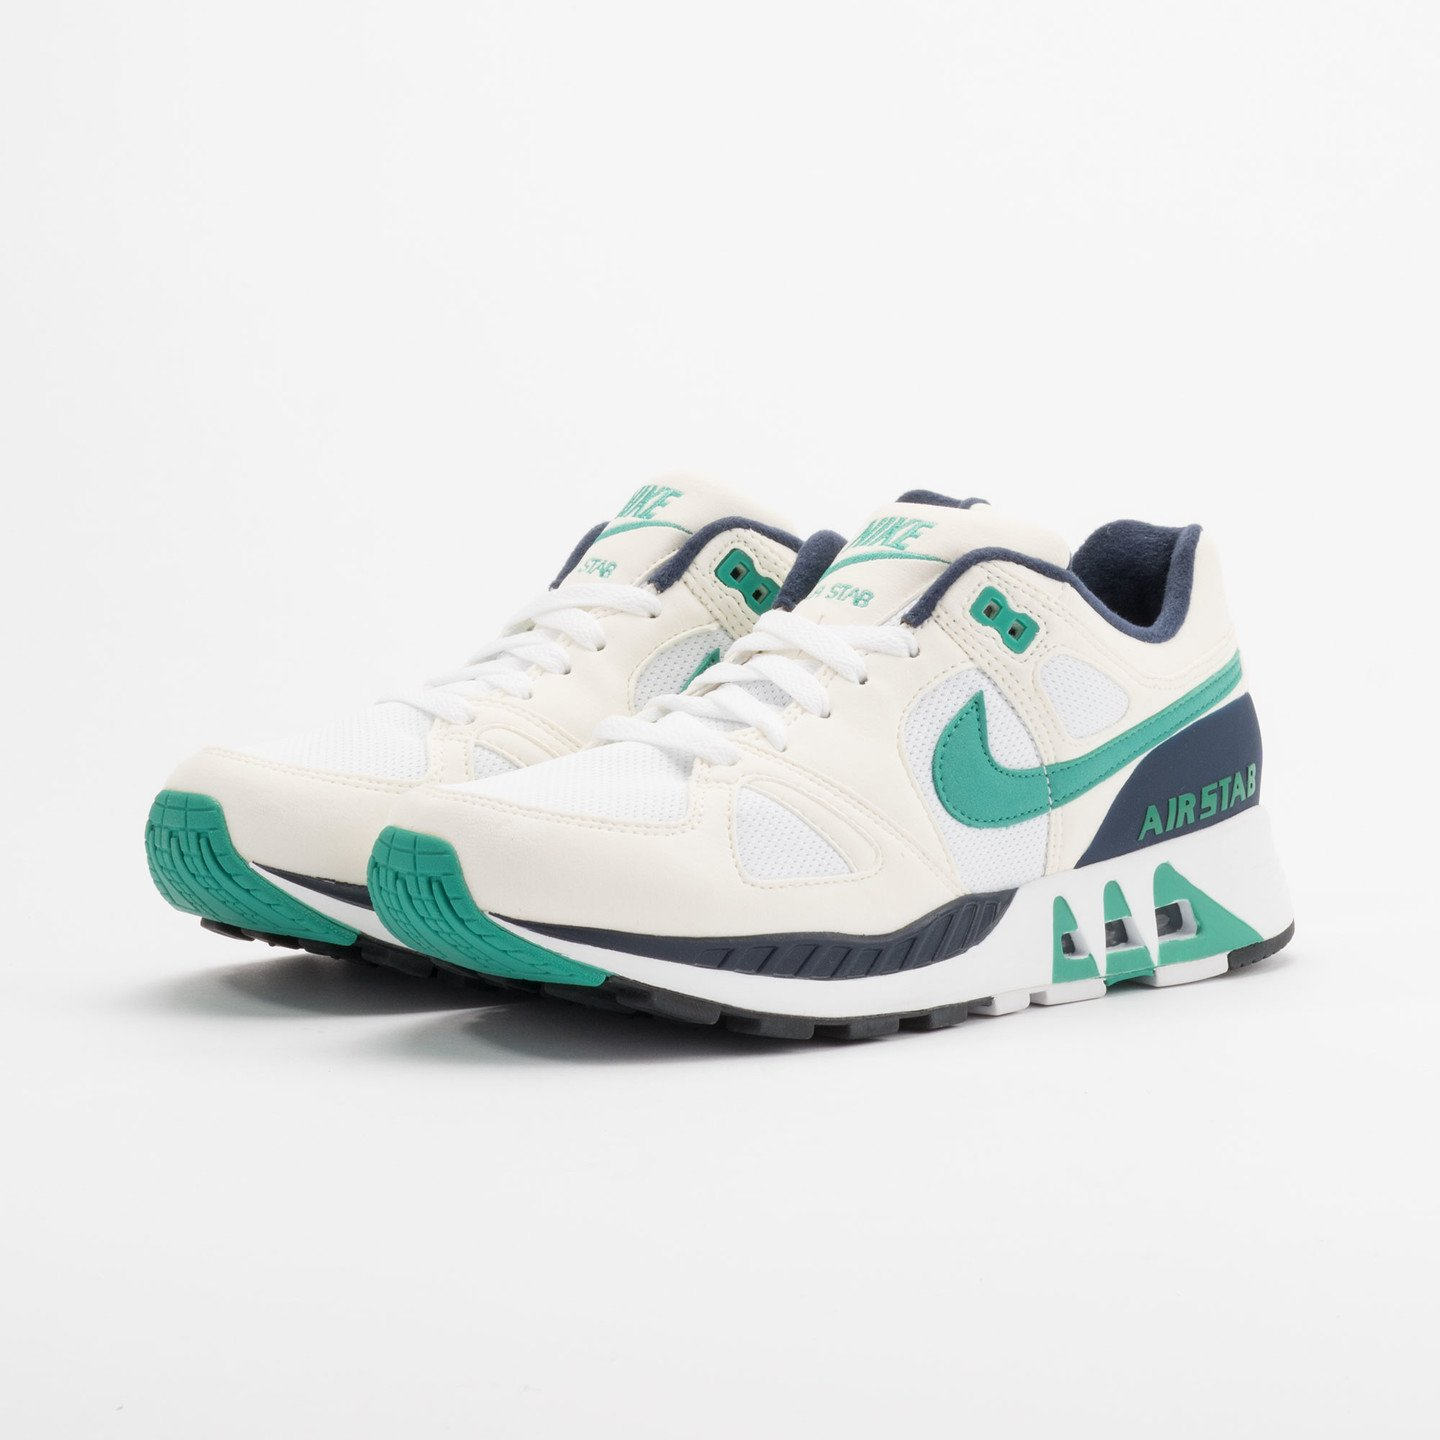 Nike Air Stab White/Emerald Green-Sl-Mid Nvy 312451-100-47